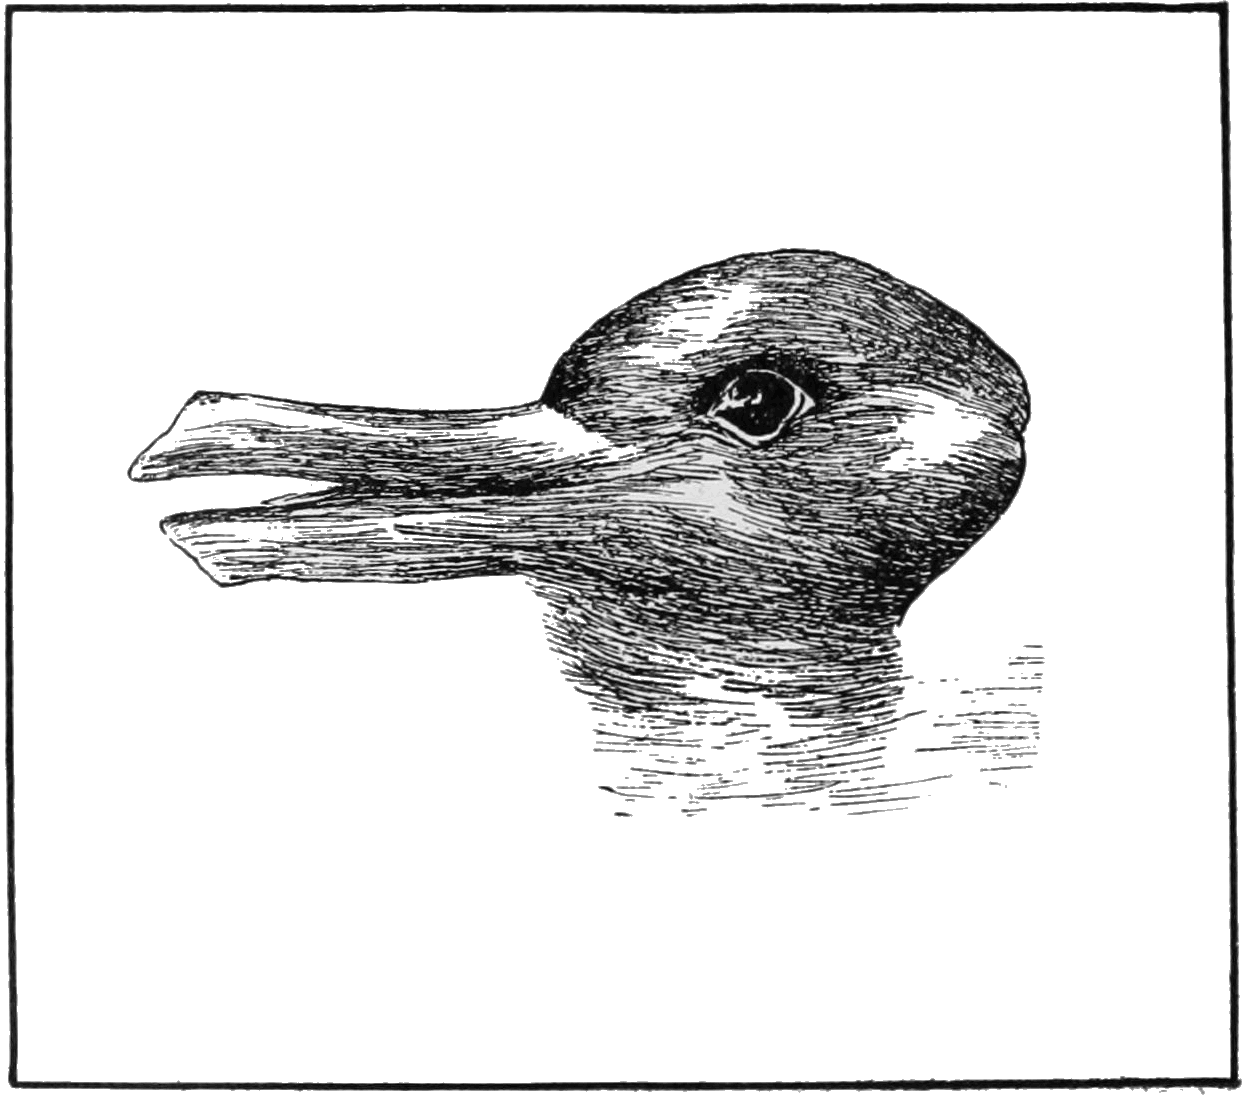 Optical Illusion of a Duck or a Rabbit Head